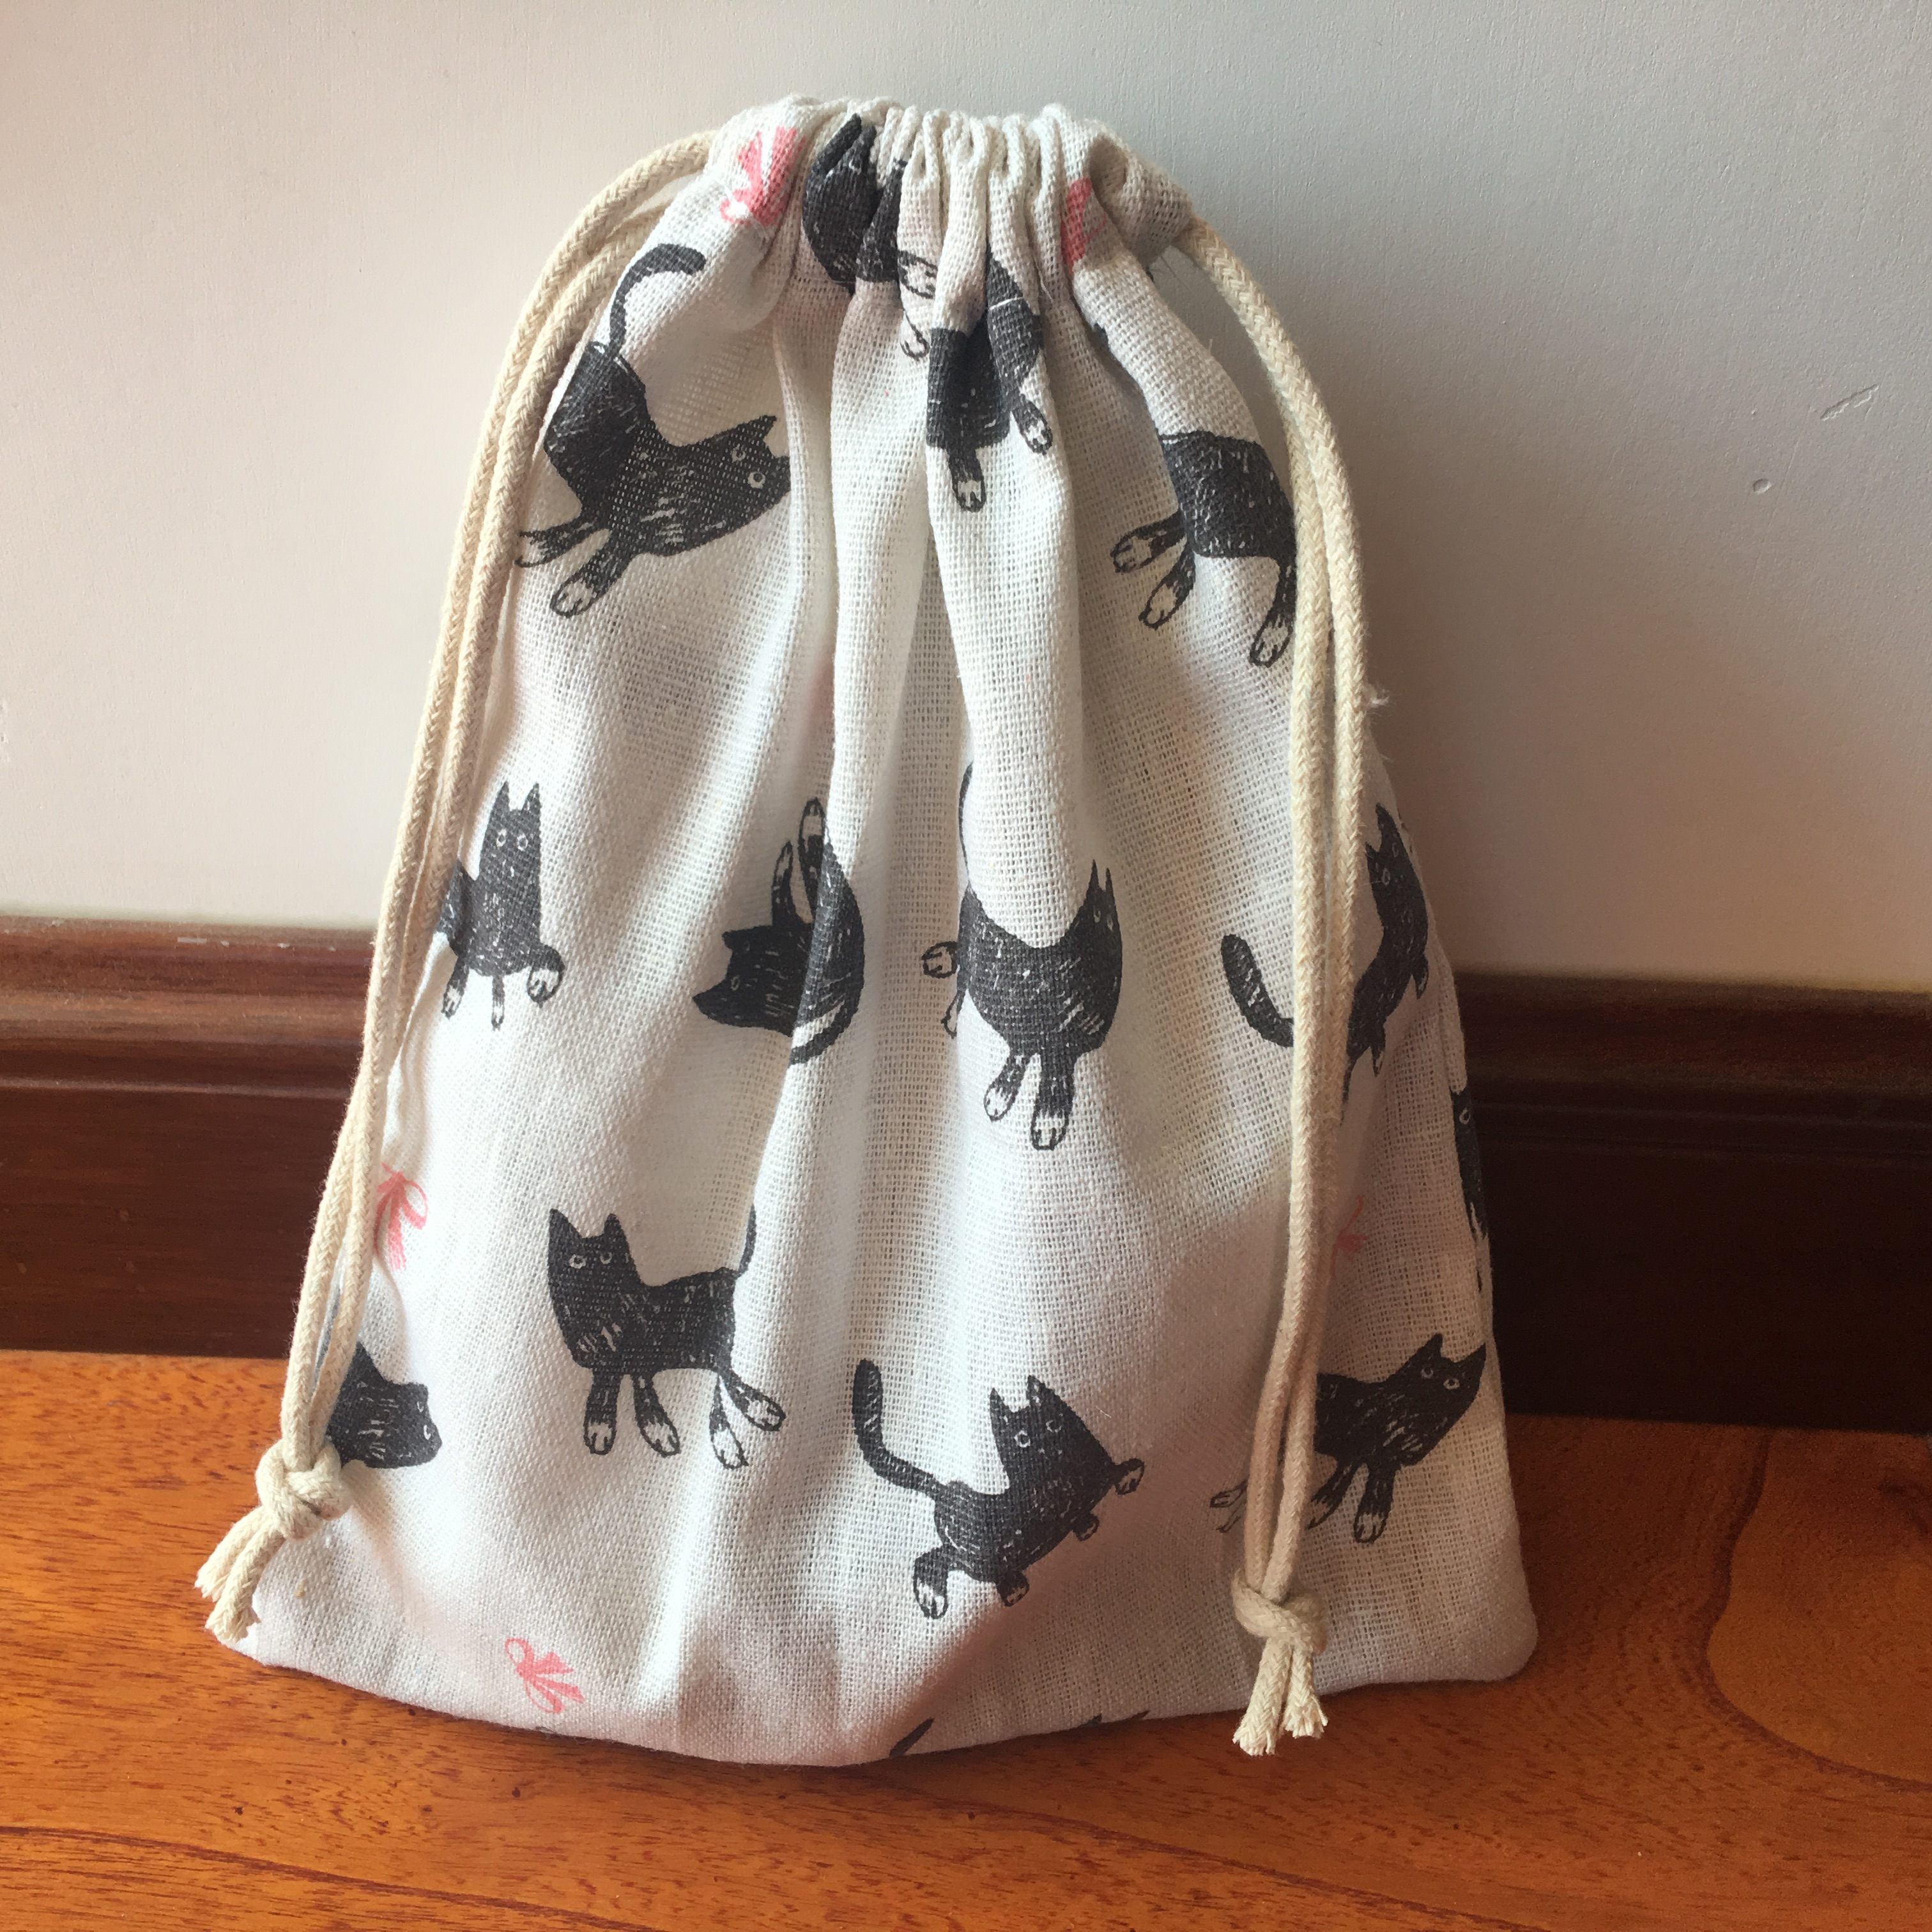 1pc Cotton Linen Drawstring Multi-purpose Pouch Party Gift Bag Black Cat Pink Bowknot YI